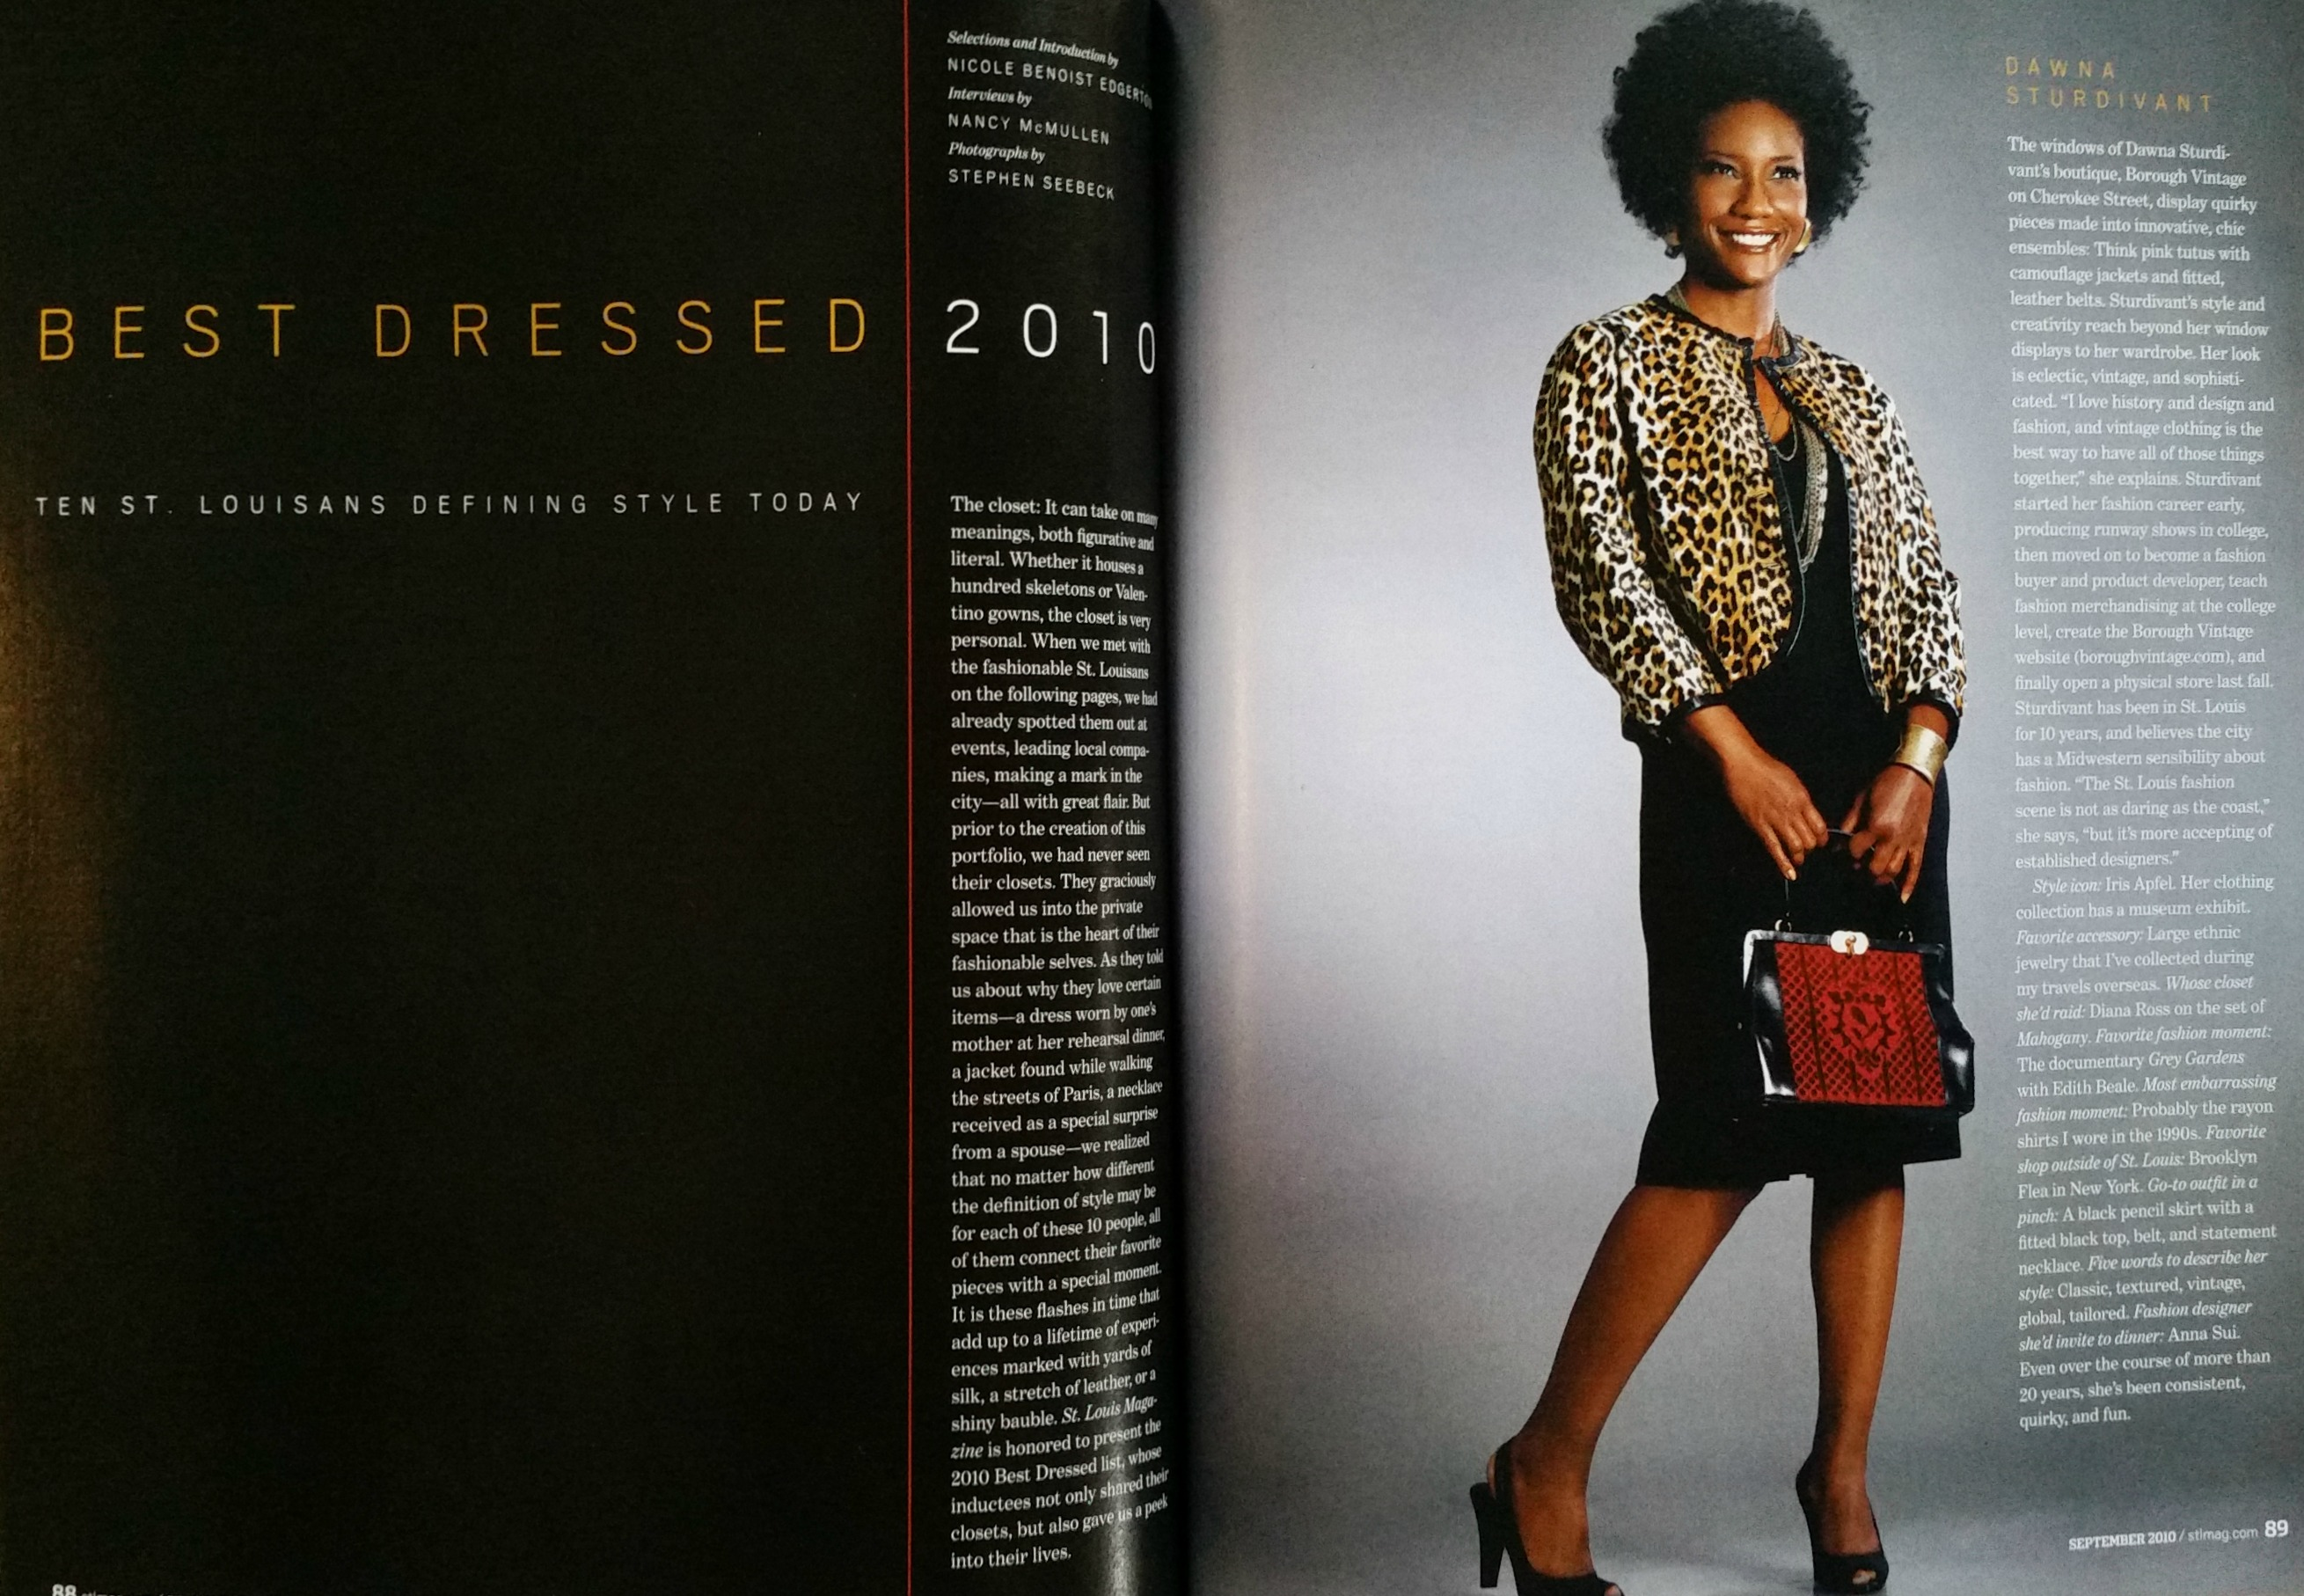 st.-louis-magazine-bestdressed-2010.jpg